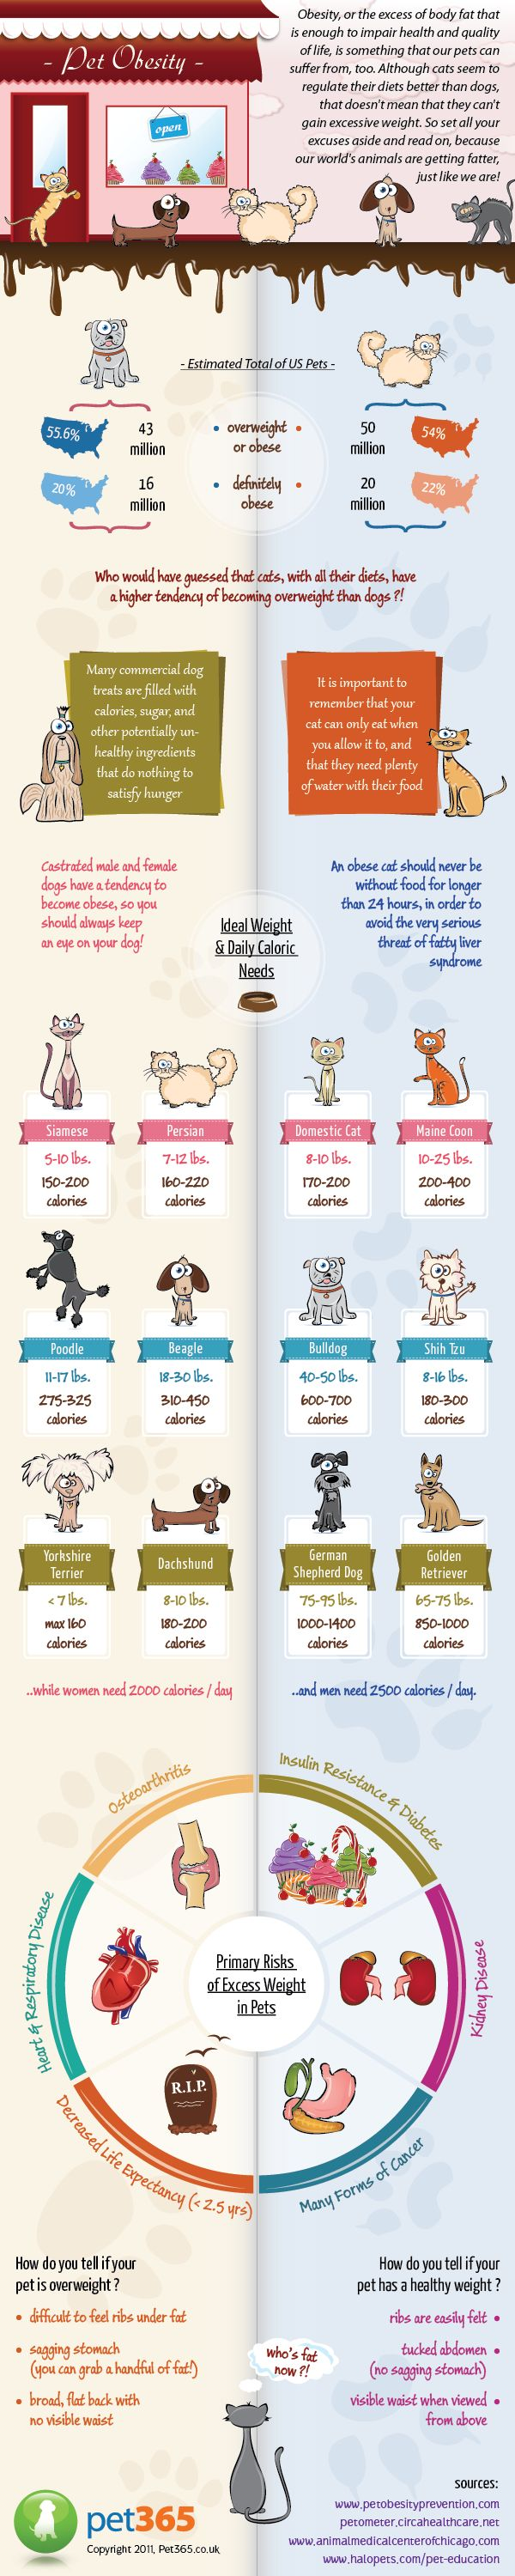 Great chart on dog/cat weight